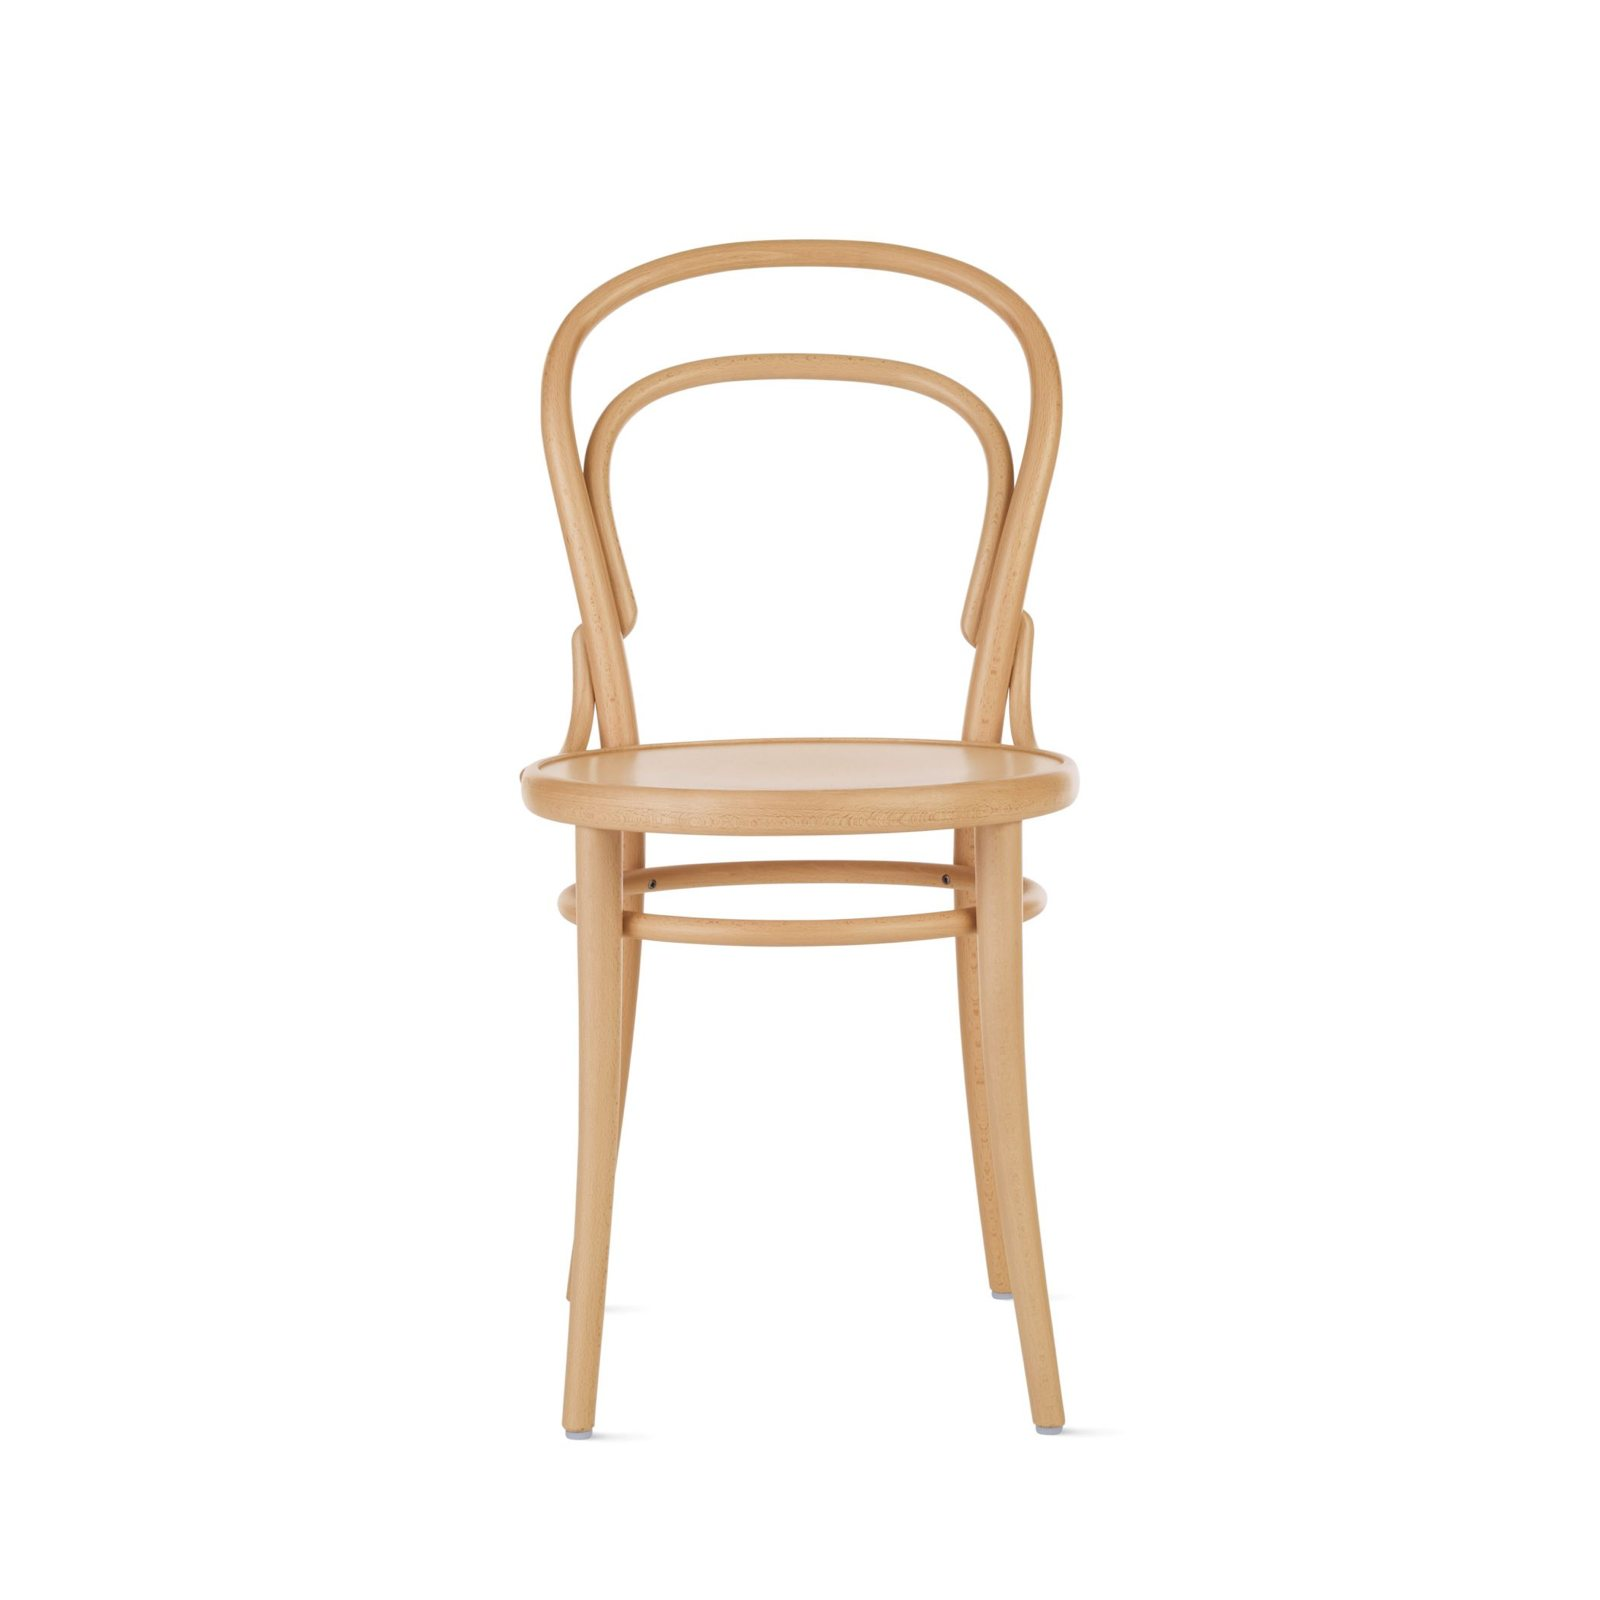 Thonet Michael Thonet 214 Chair